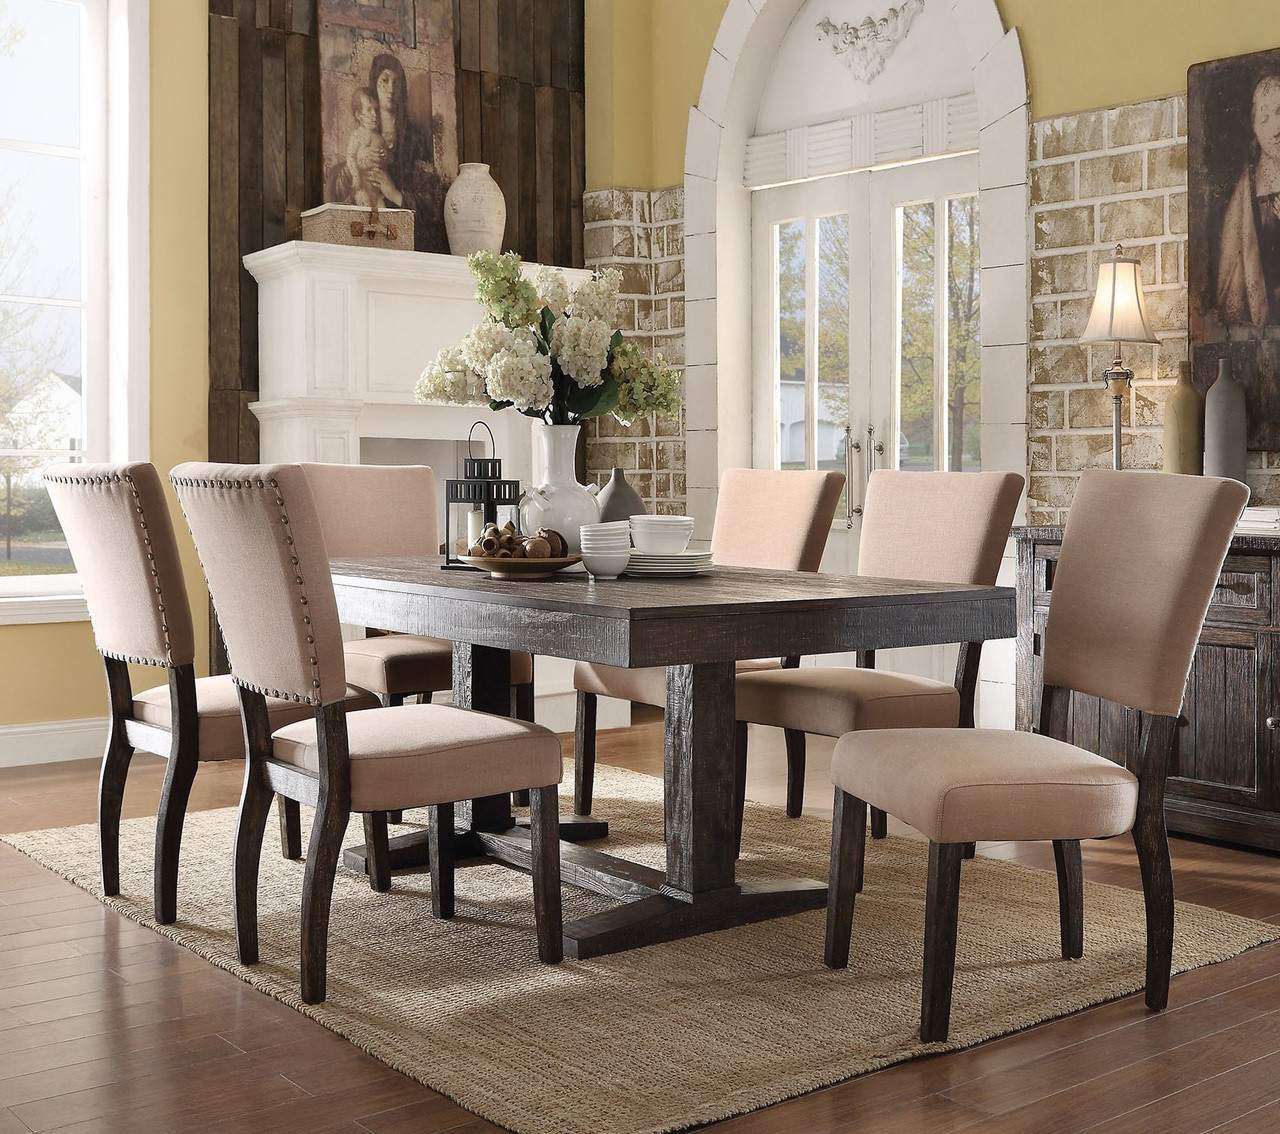 Lounche Dining Set Acme 71710 Salvaged Oak Dining Room Table Set